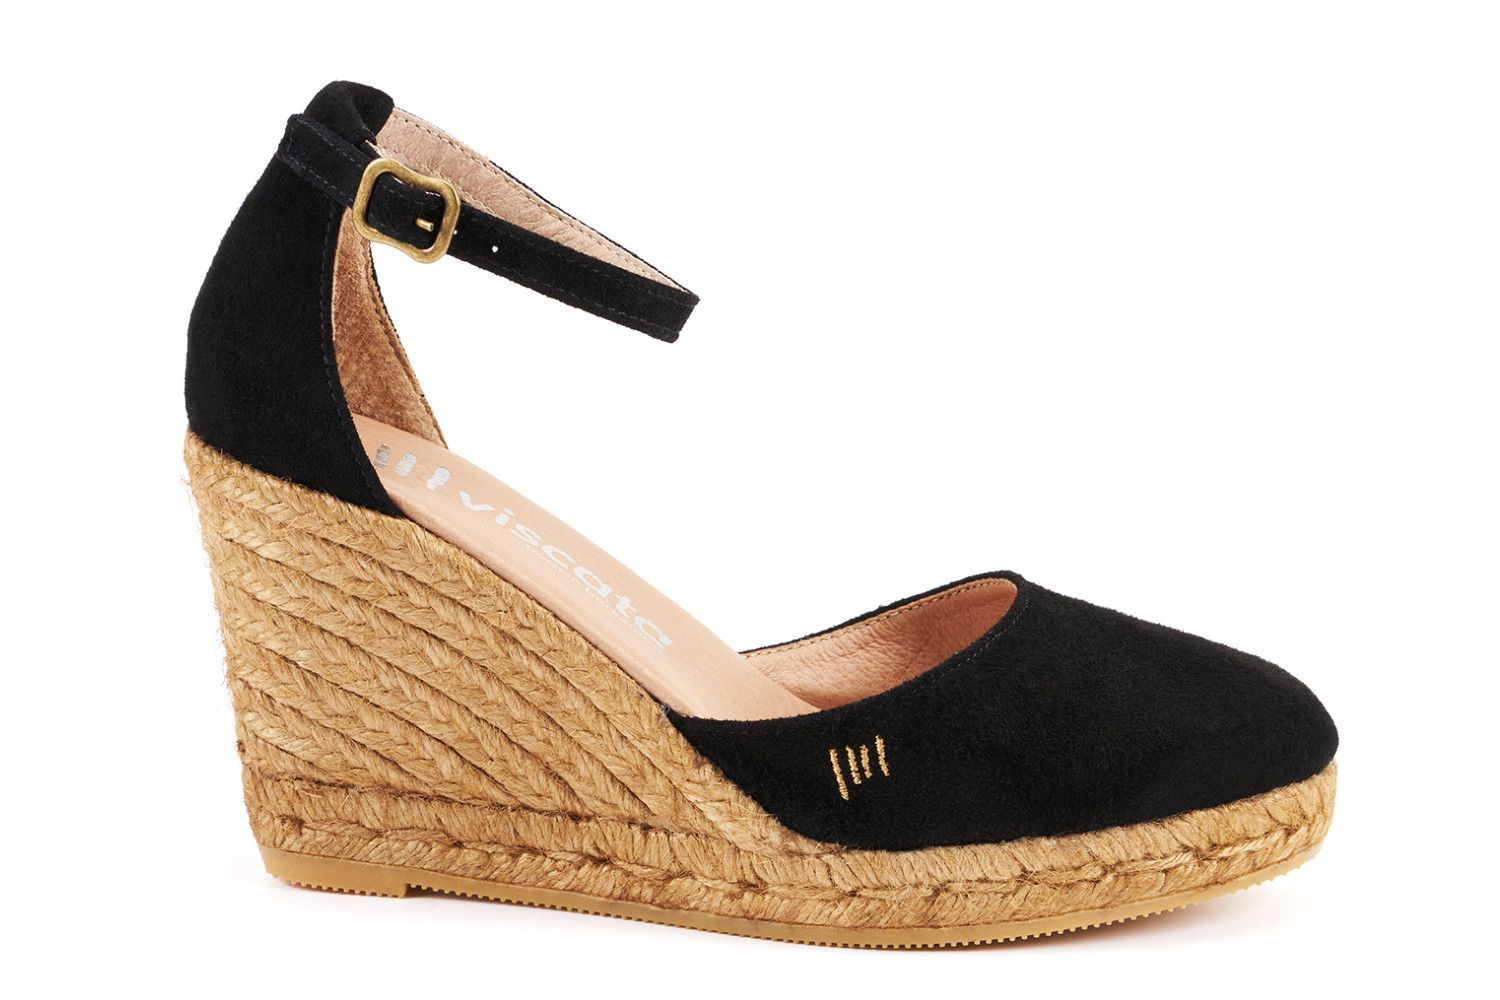 2d07012496b Palamos Suede Wedges - Black Womens Espadrilles Wedges